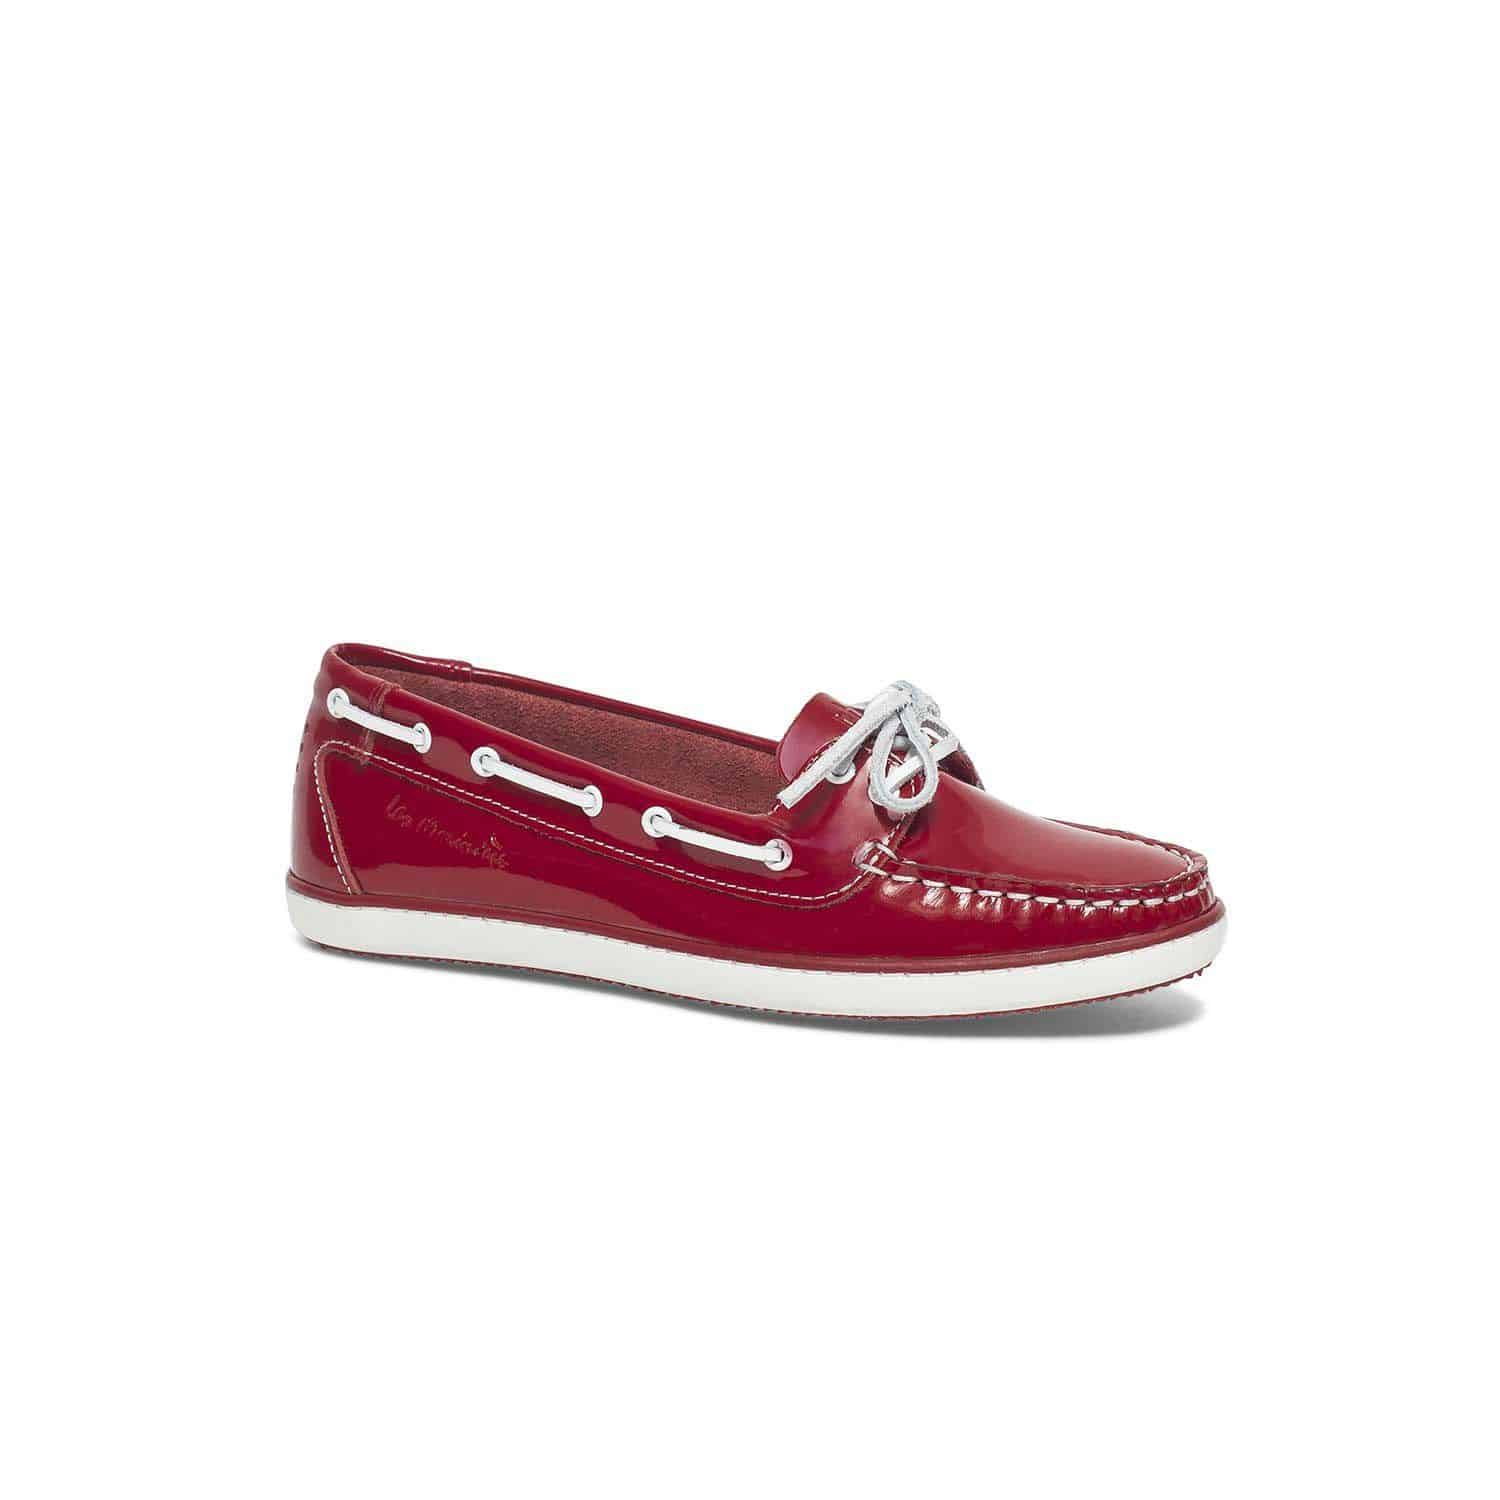 Flavie-, Womens Moccasins TBS